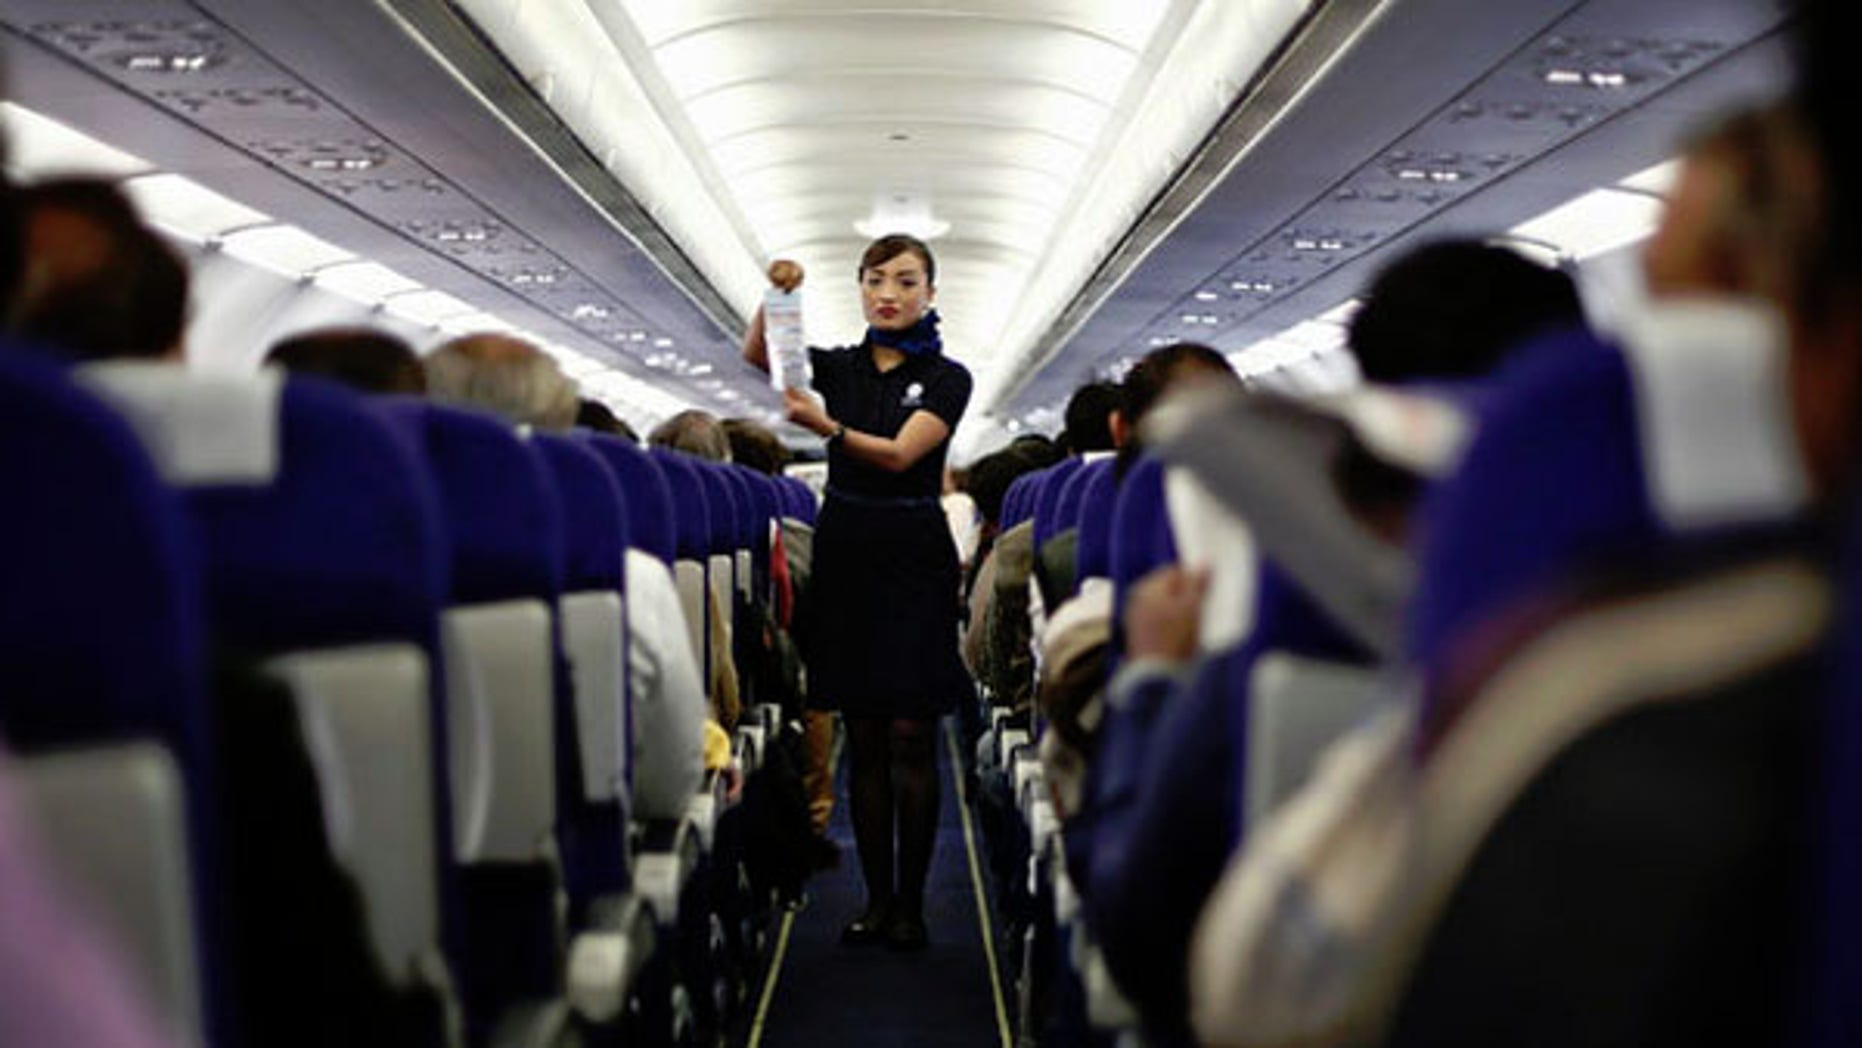 Not only can being nice while flying earn you points, being rude can cost you.